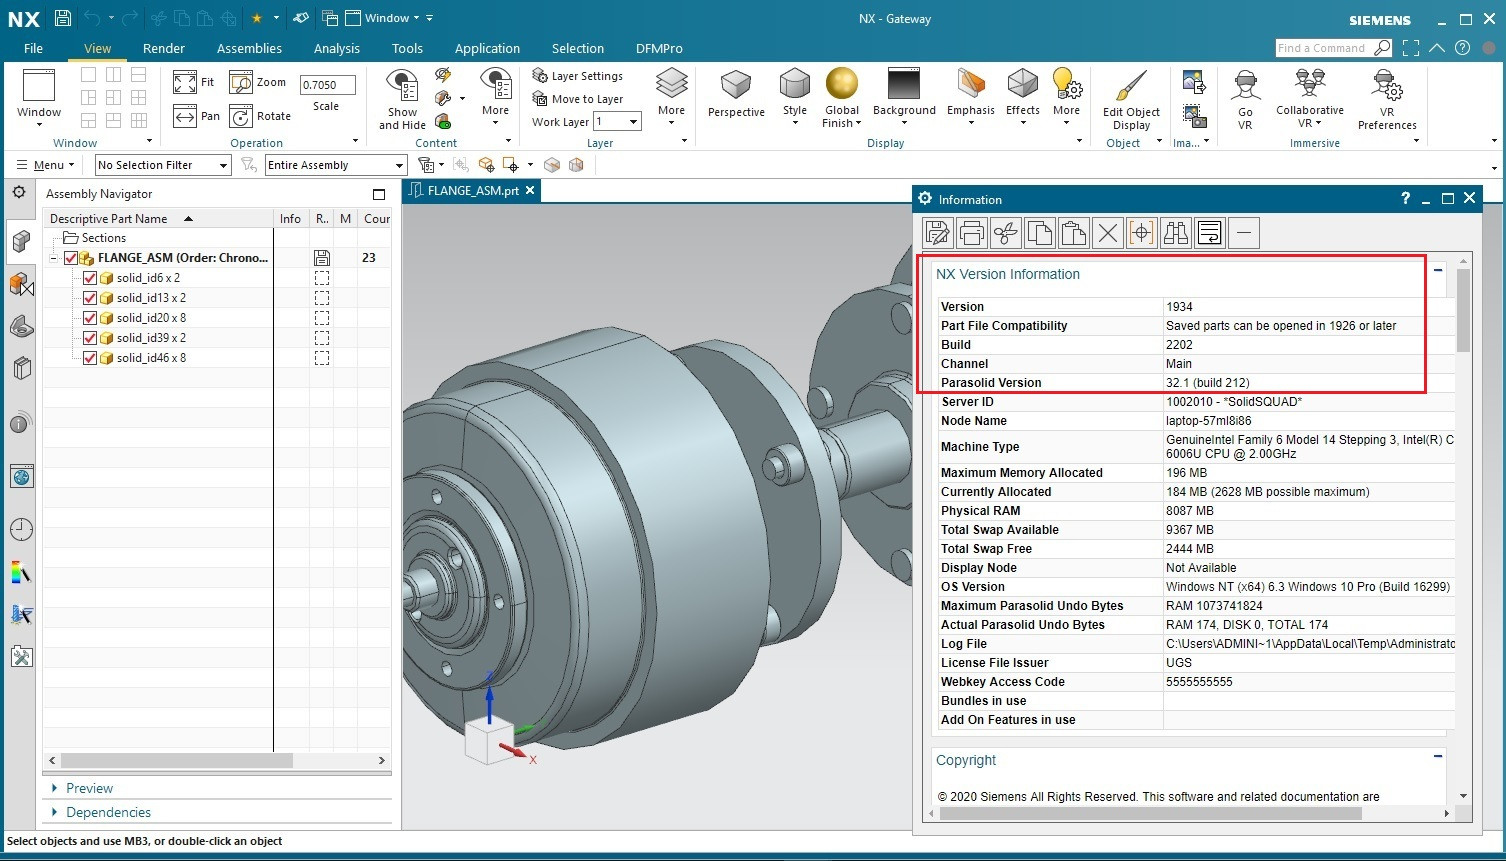 Working with Siemens NX 1934 Build 2202 full license